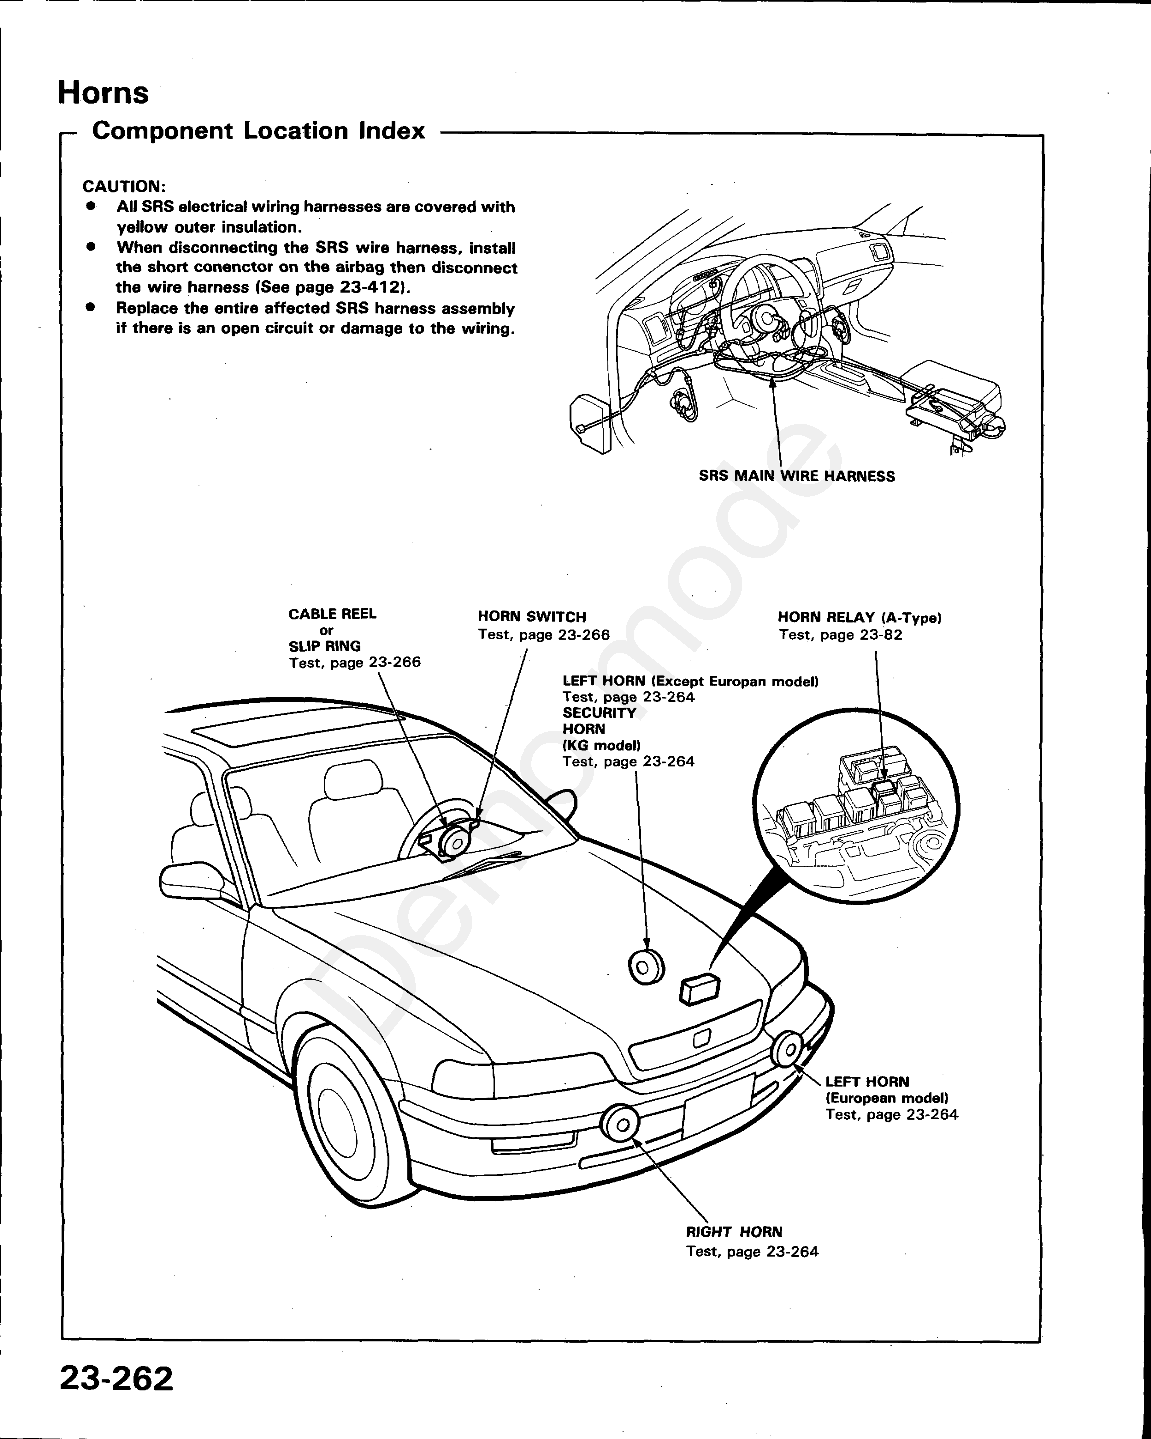 Acura Legend Online Service Manual Page 1195 Wiring Harness